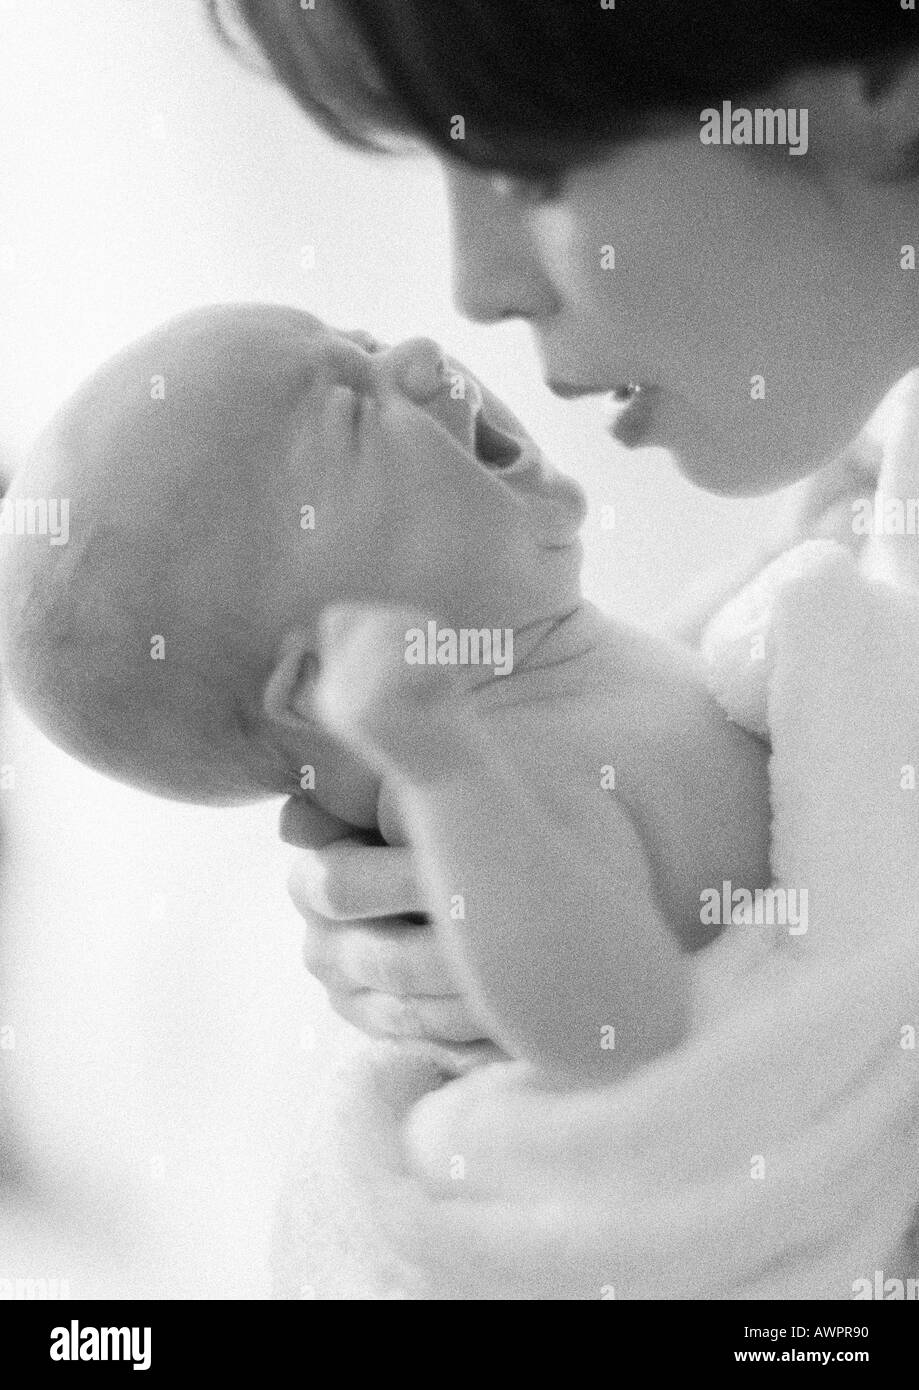 Mother holding crying infant, b&w - Stock Image